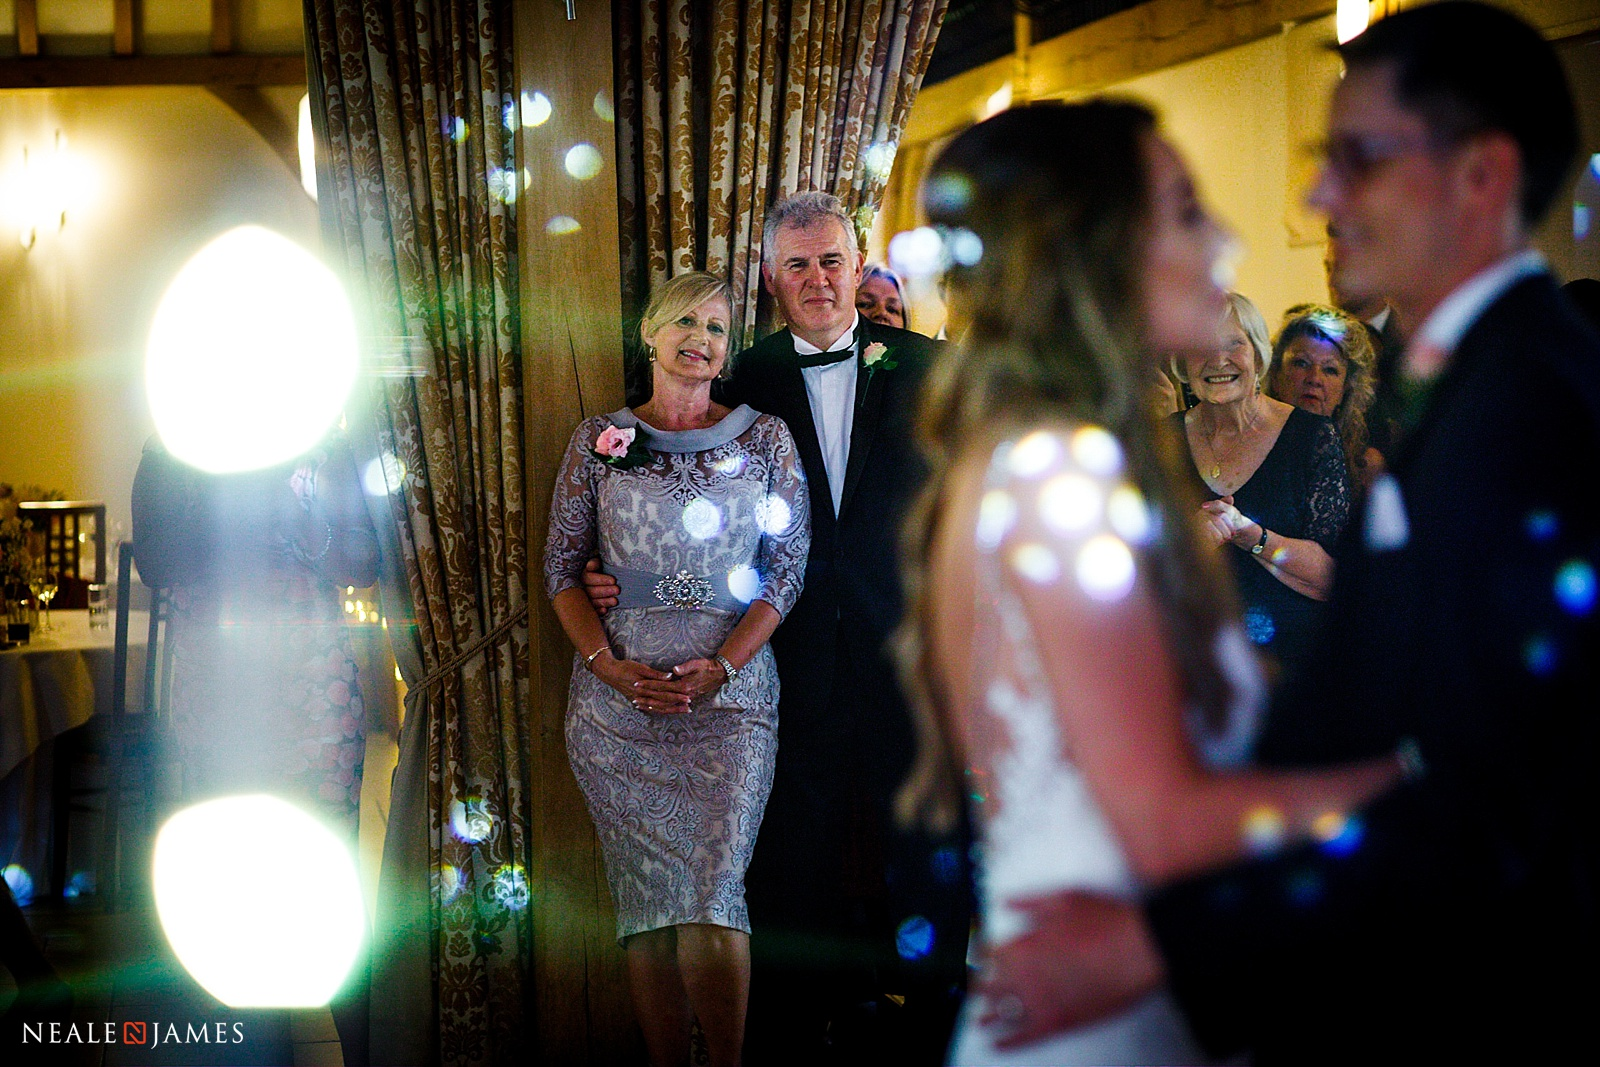 A colour photo of mum and dad watching on as the bride and groom have their first dance